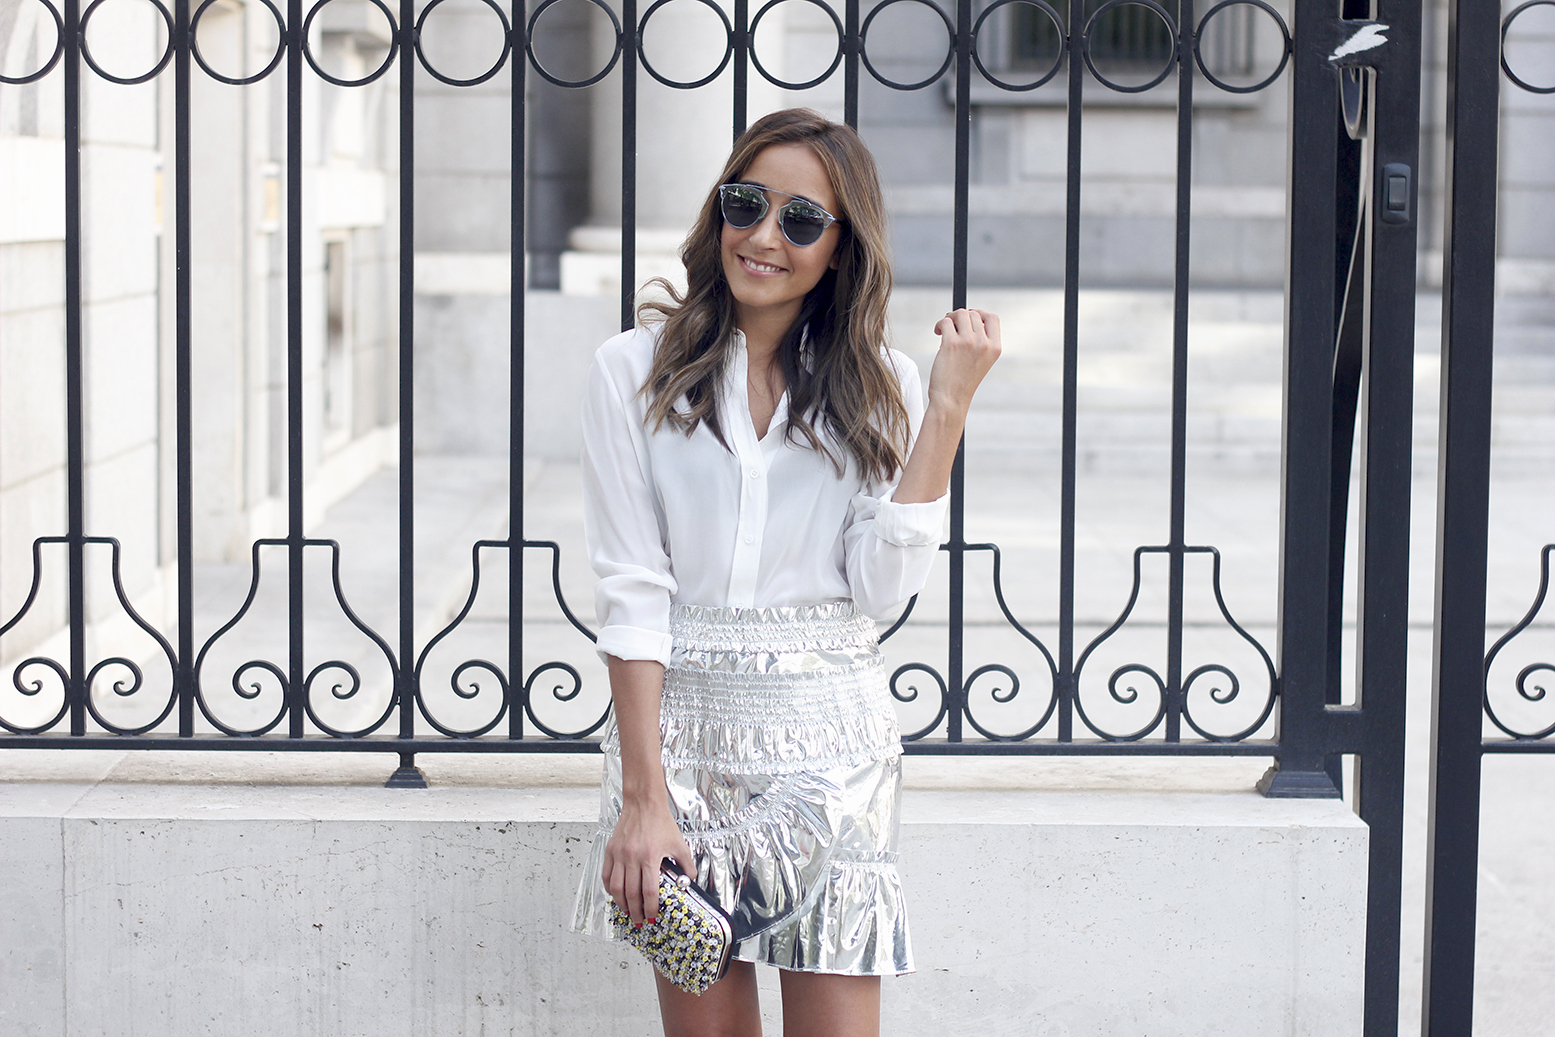 Isabel Marant Metallic Skirt white shirt nude sandals dior so real sunnies outfit style fashion16